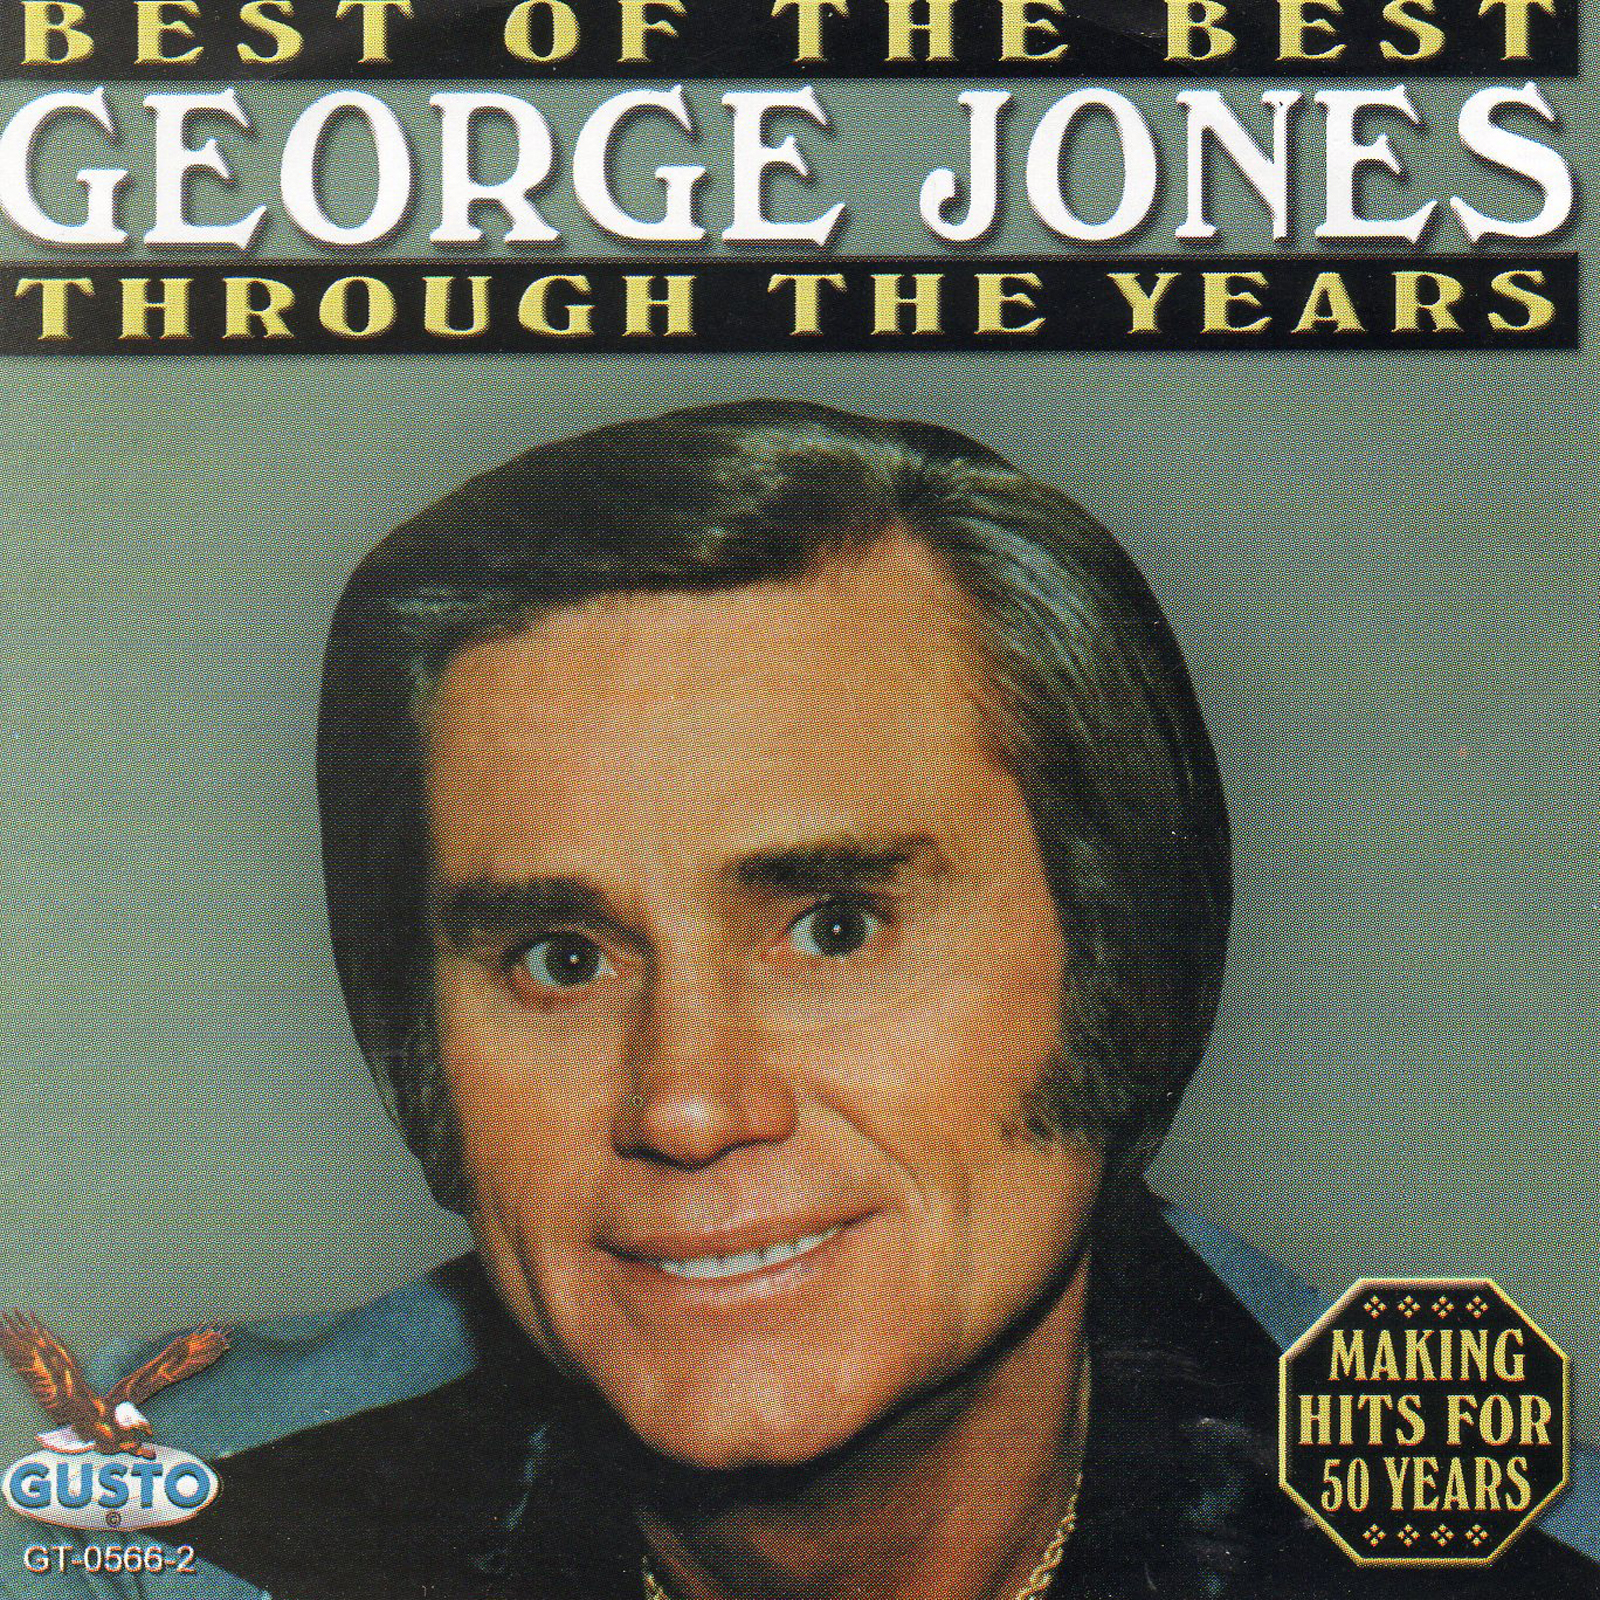 George Jones Best Of The Best Through The Years Cd Star